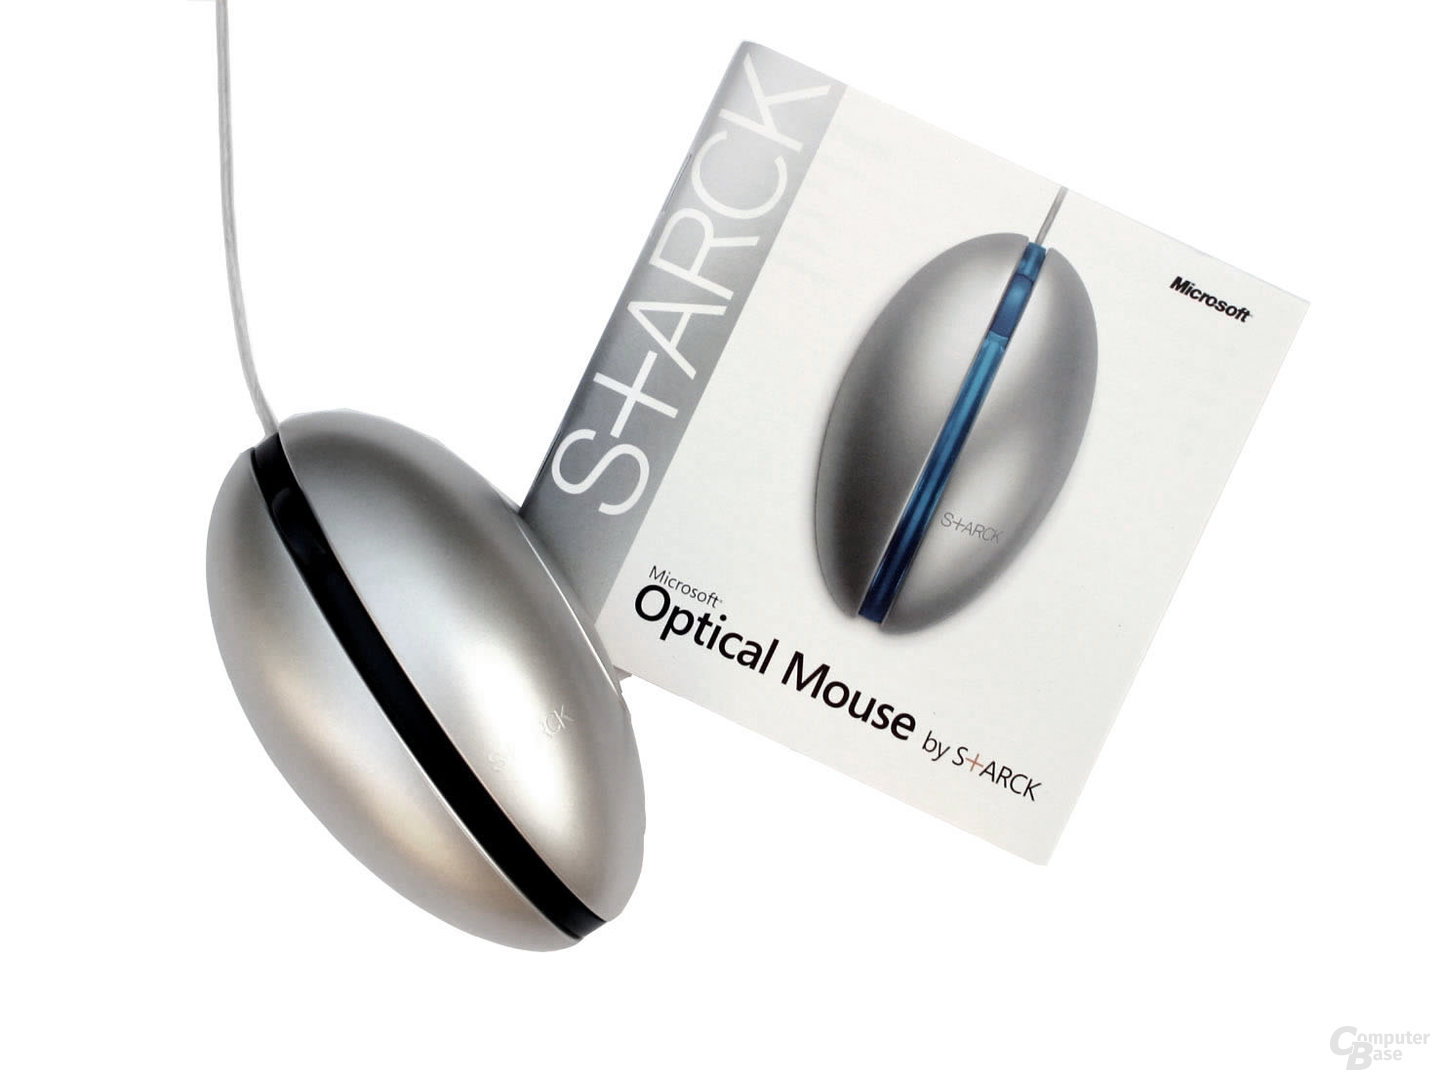 Lieferumfang Optical Mouse by Starck